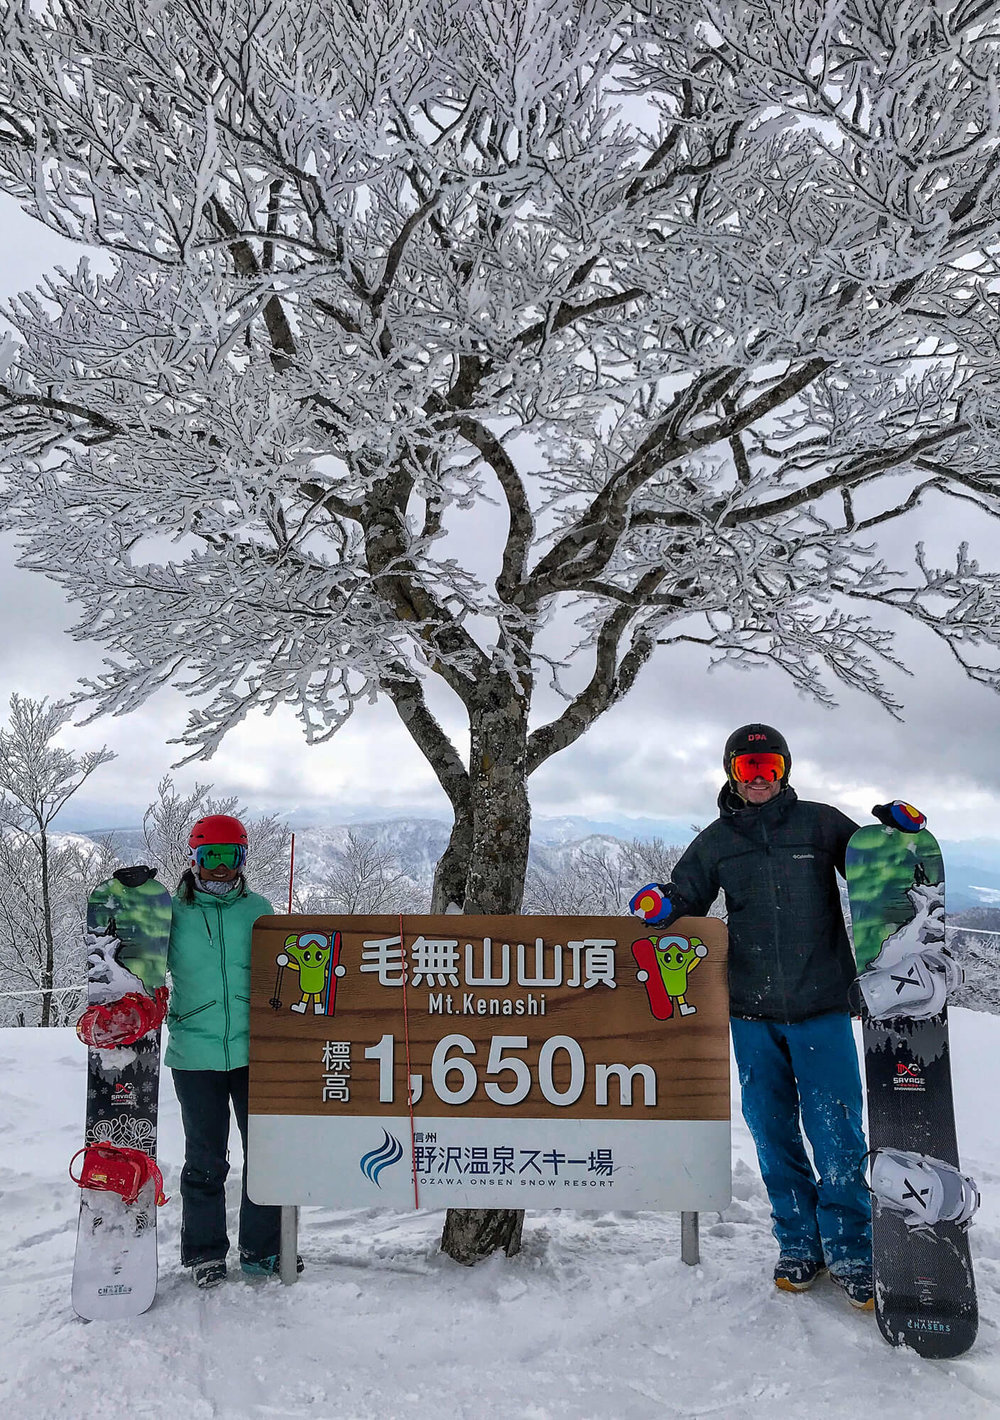 MT KENASHI - THE TOP OF THE RESORT